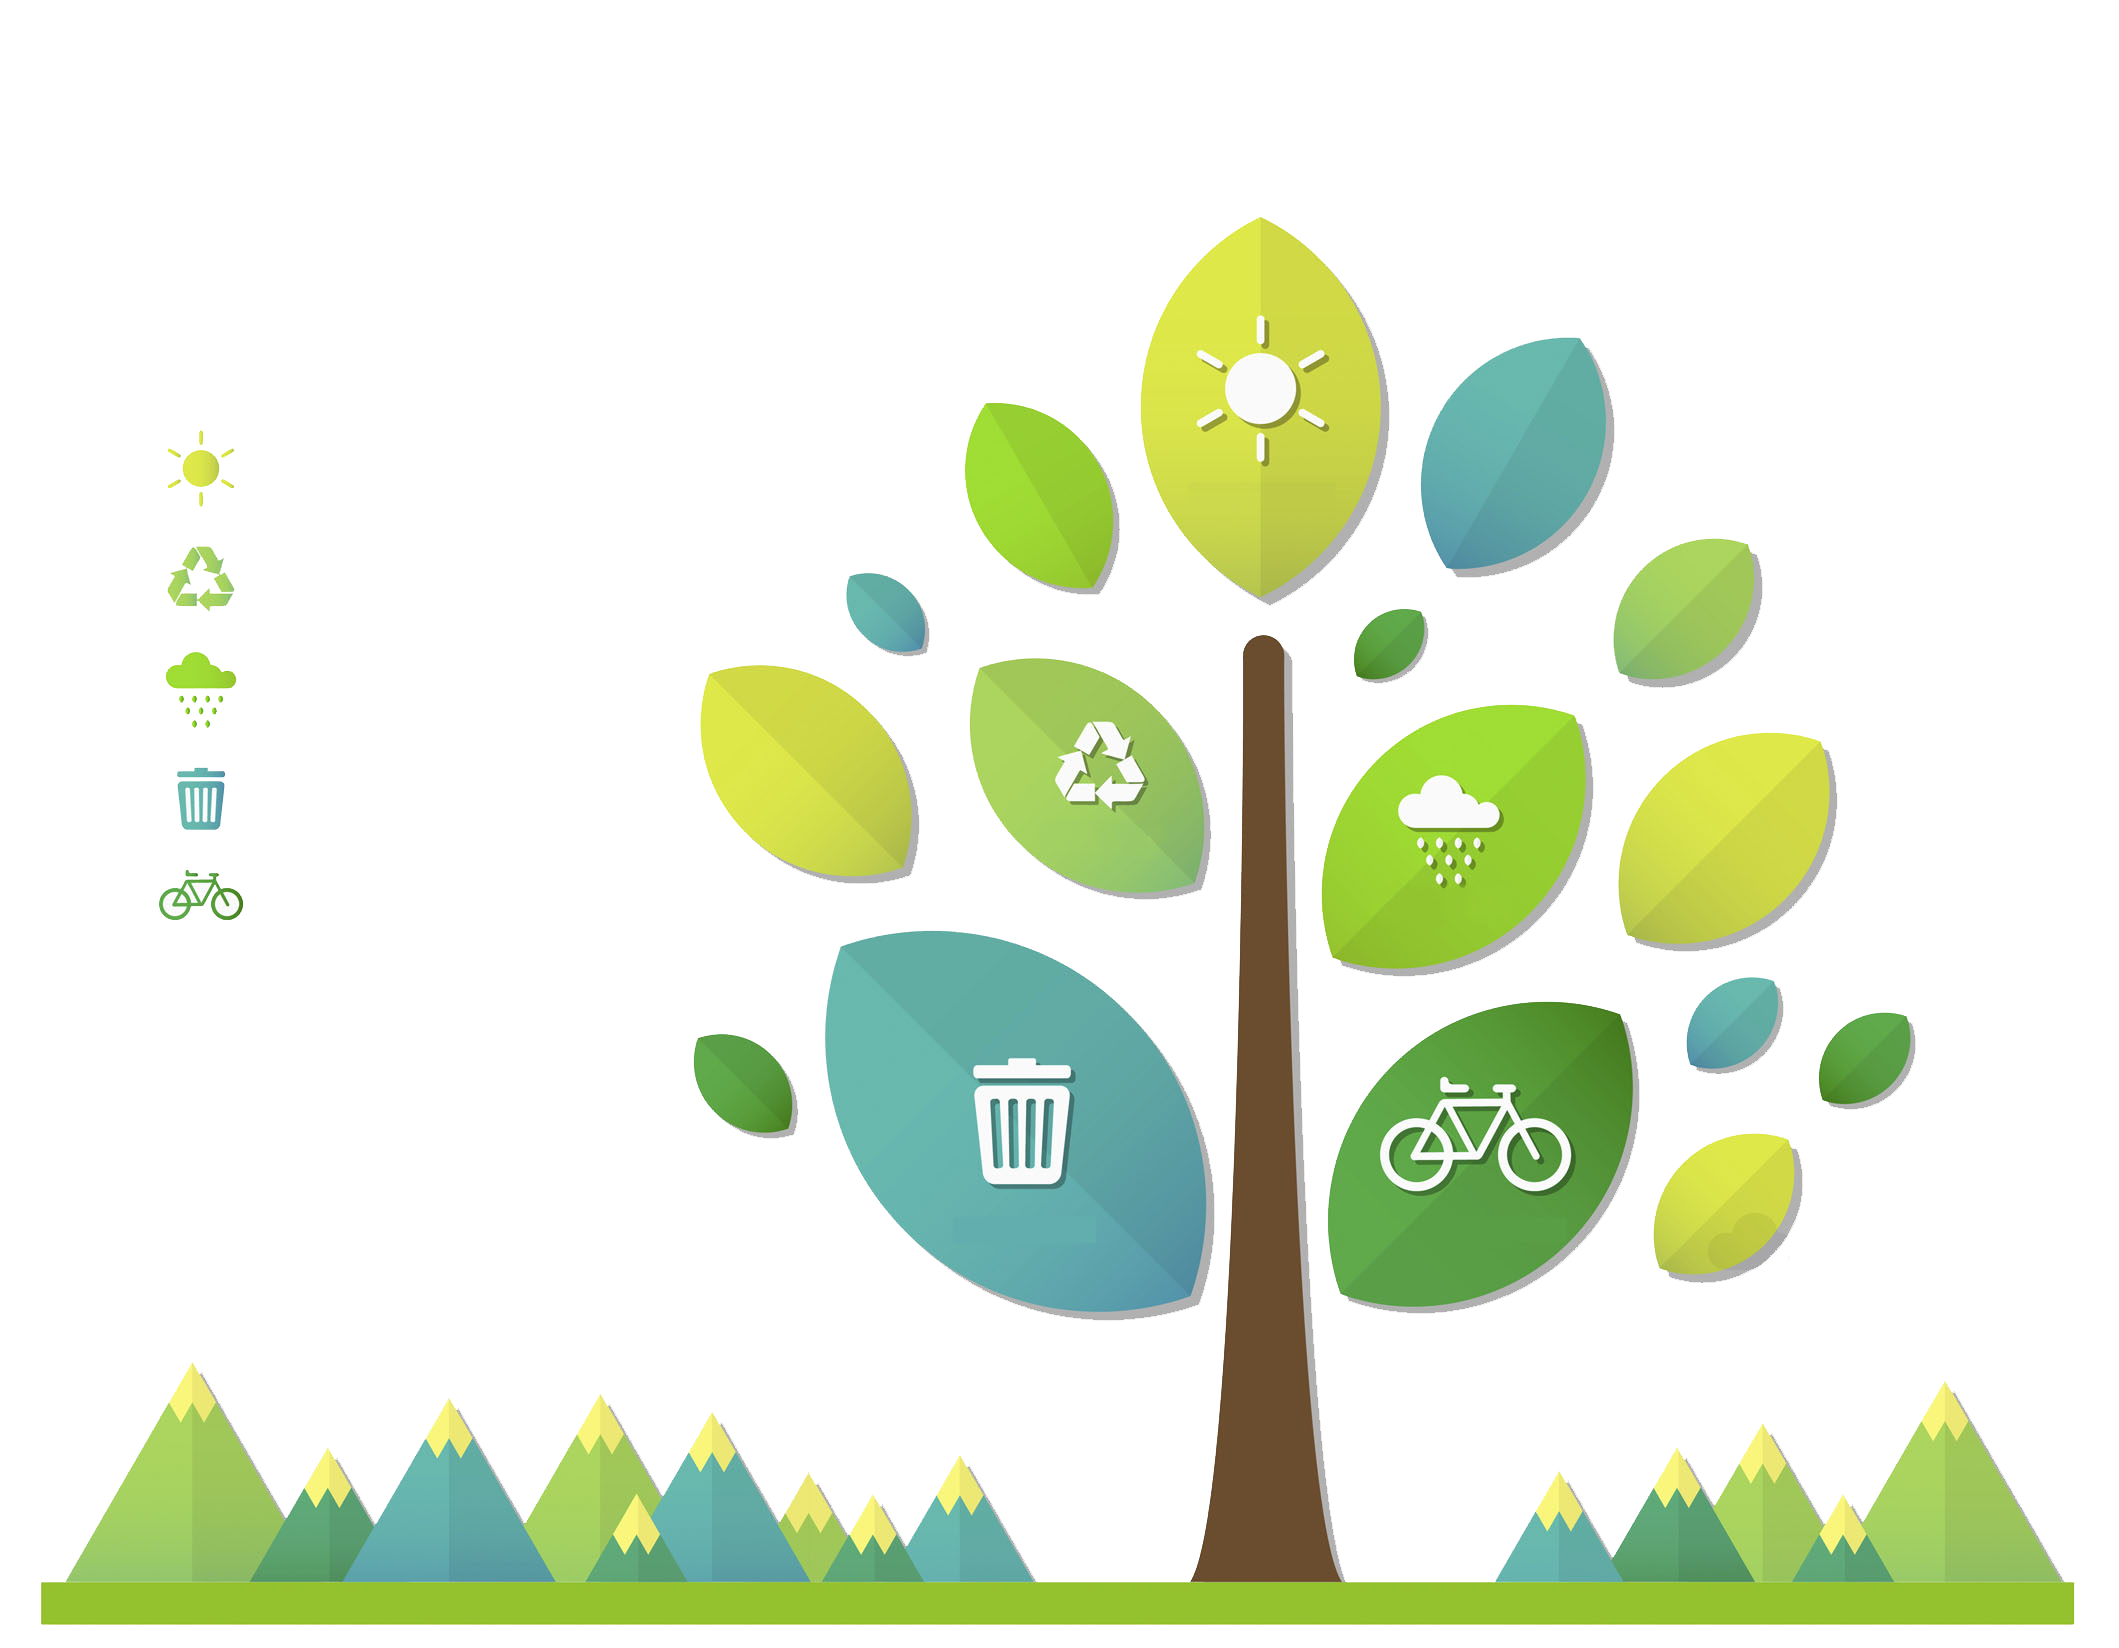 Environment clipart environmental background. Protection infographic natural green